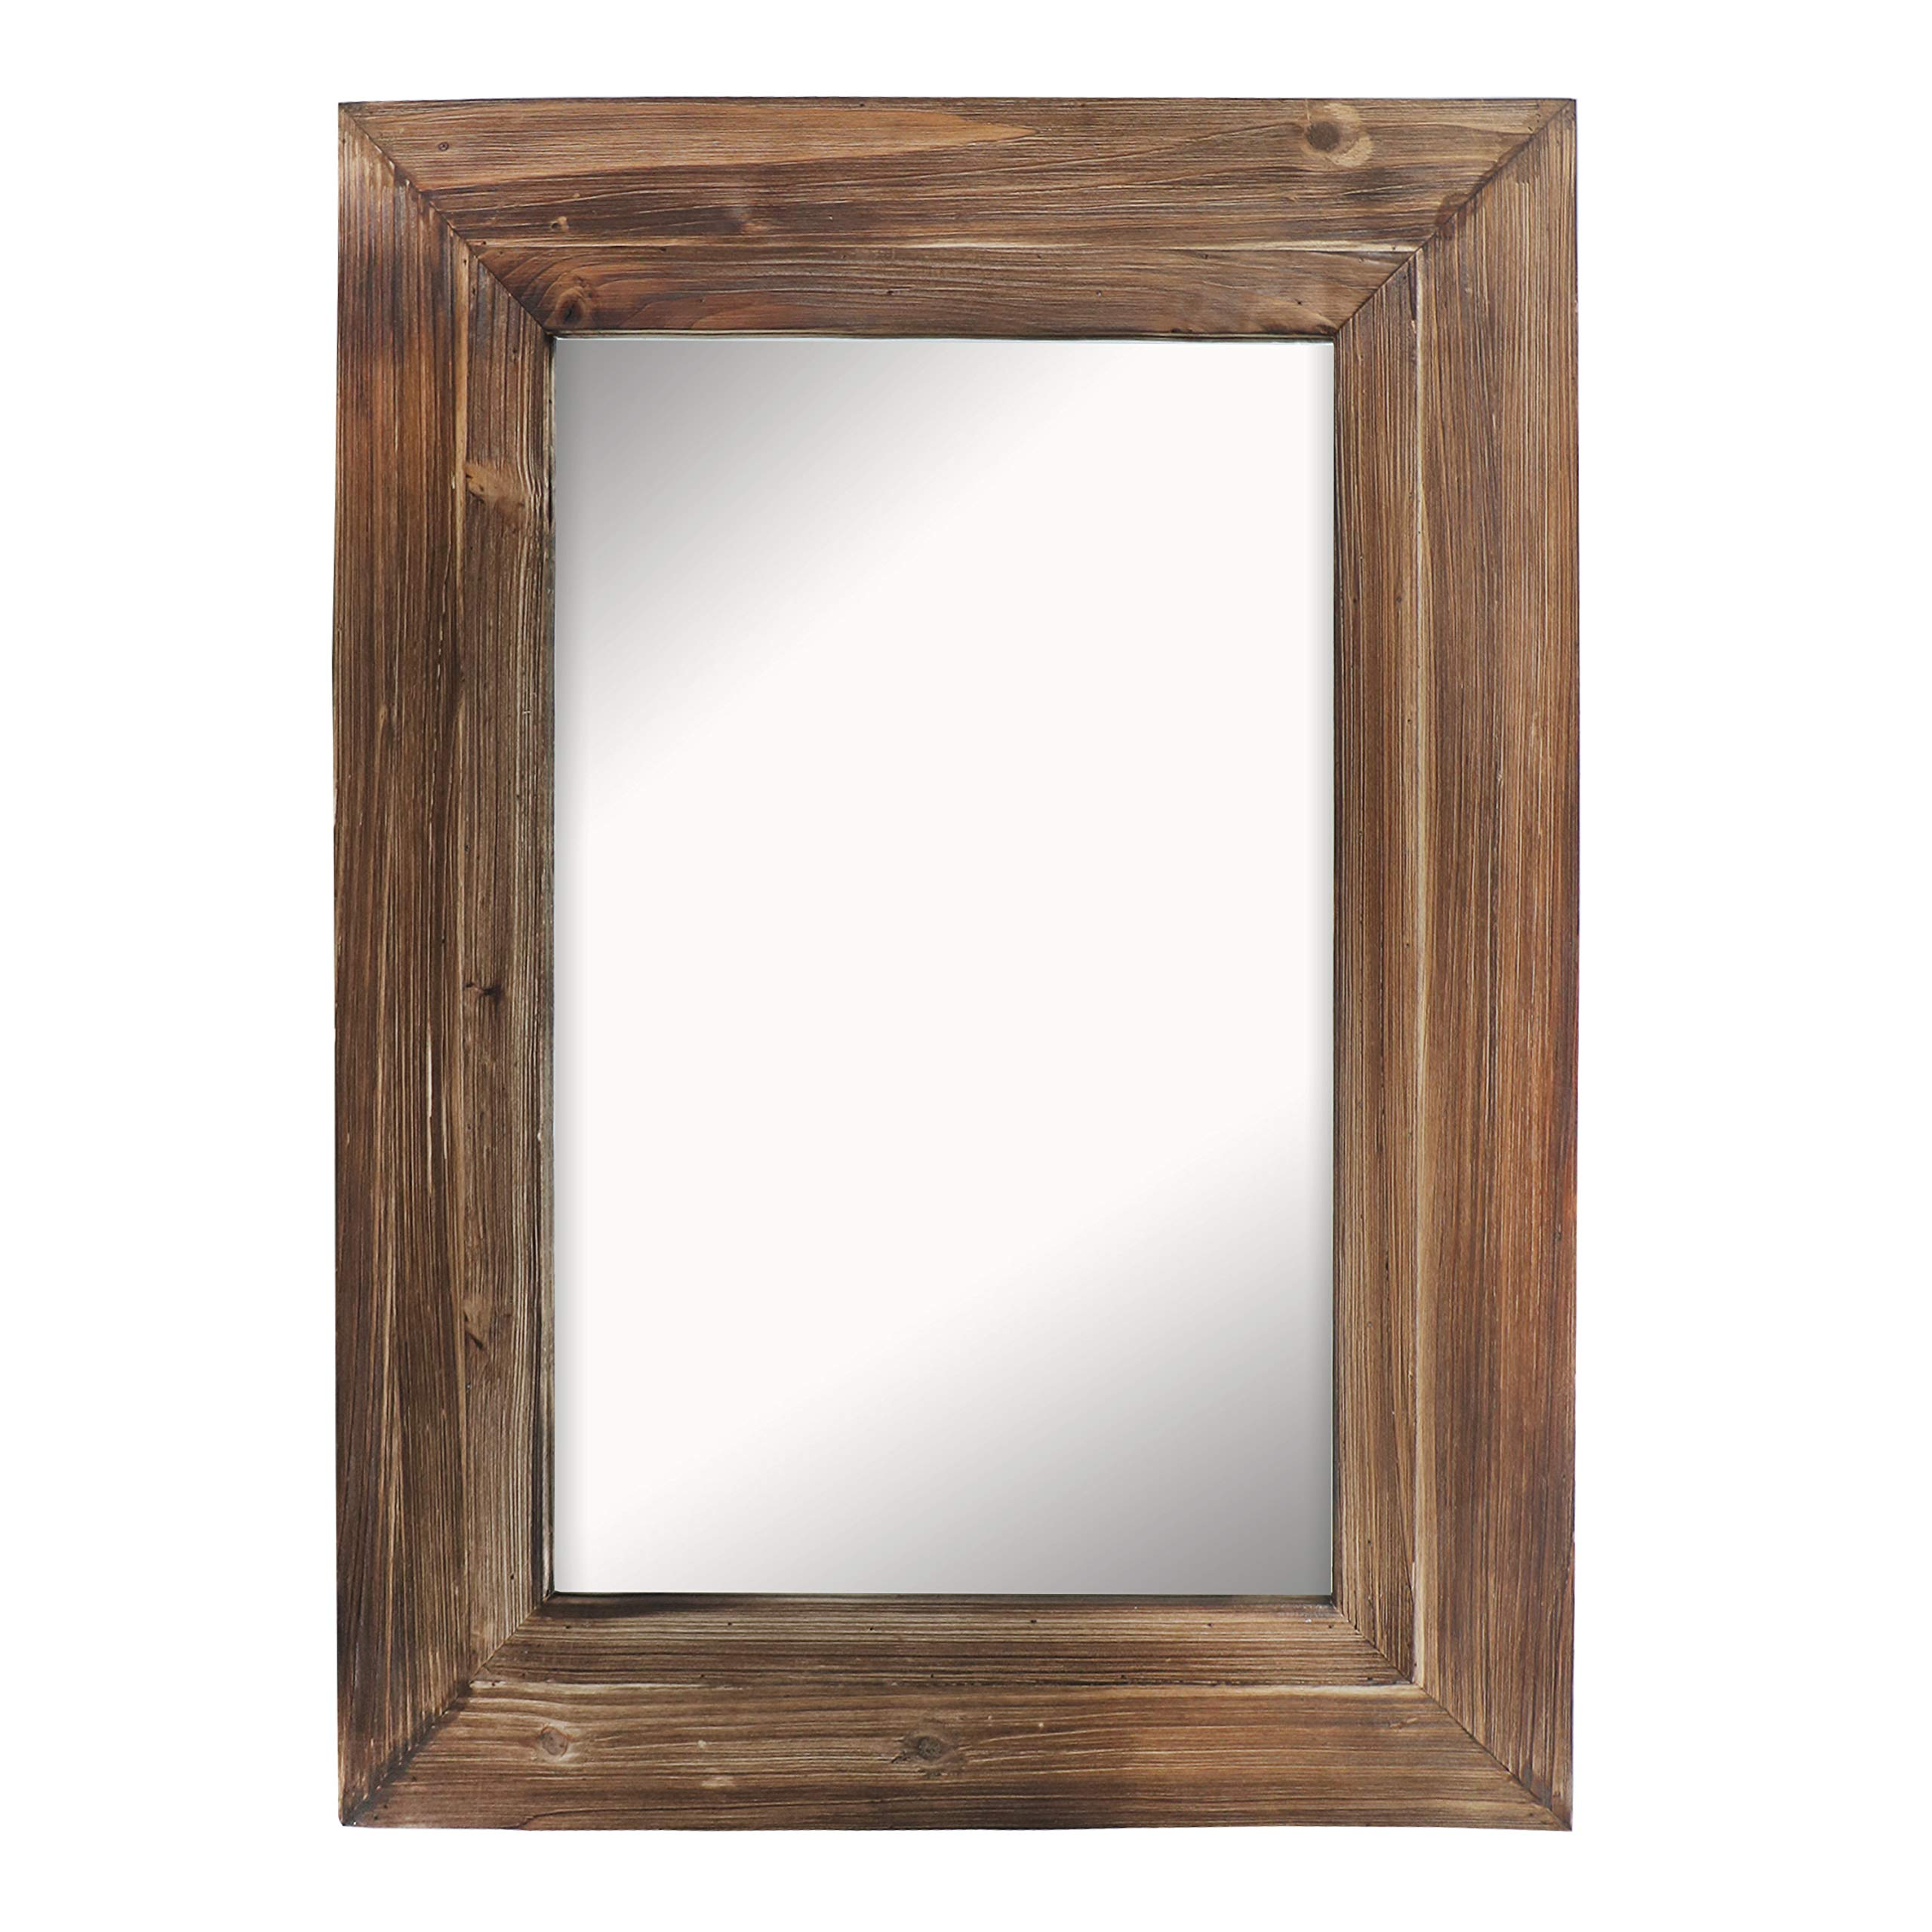 """Barnyard Designs Decorative Torched Wood Frame Wall Mirror, Large Rustic Farmhouse Mirror Decor, Vertical or Horizontal Hanging, for Bathroom Vanity, Living Room or Bedroom, 32"""" x 24"""""""